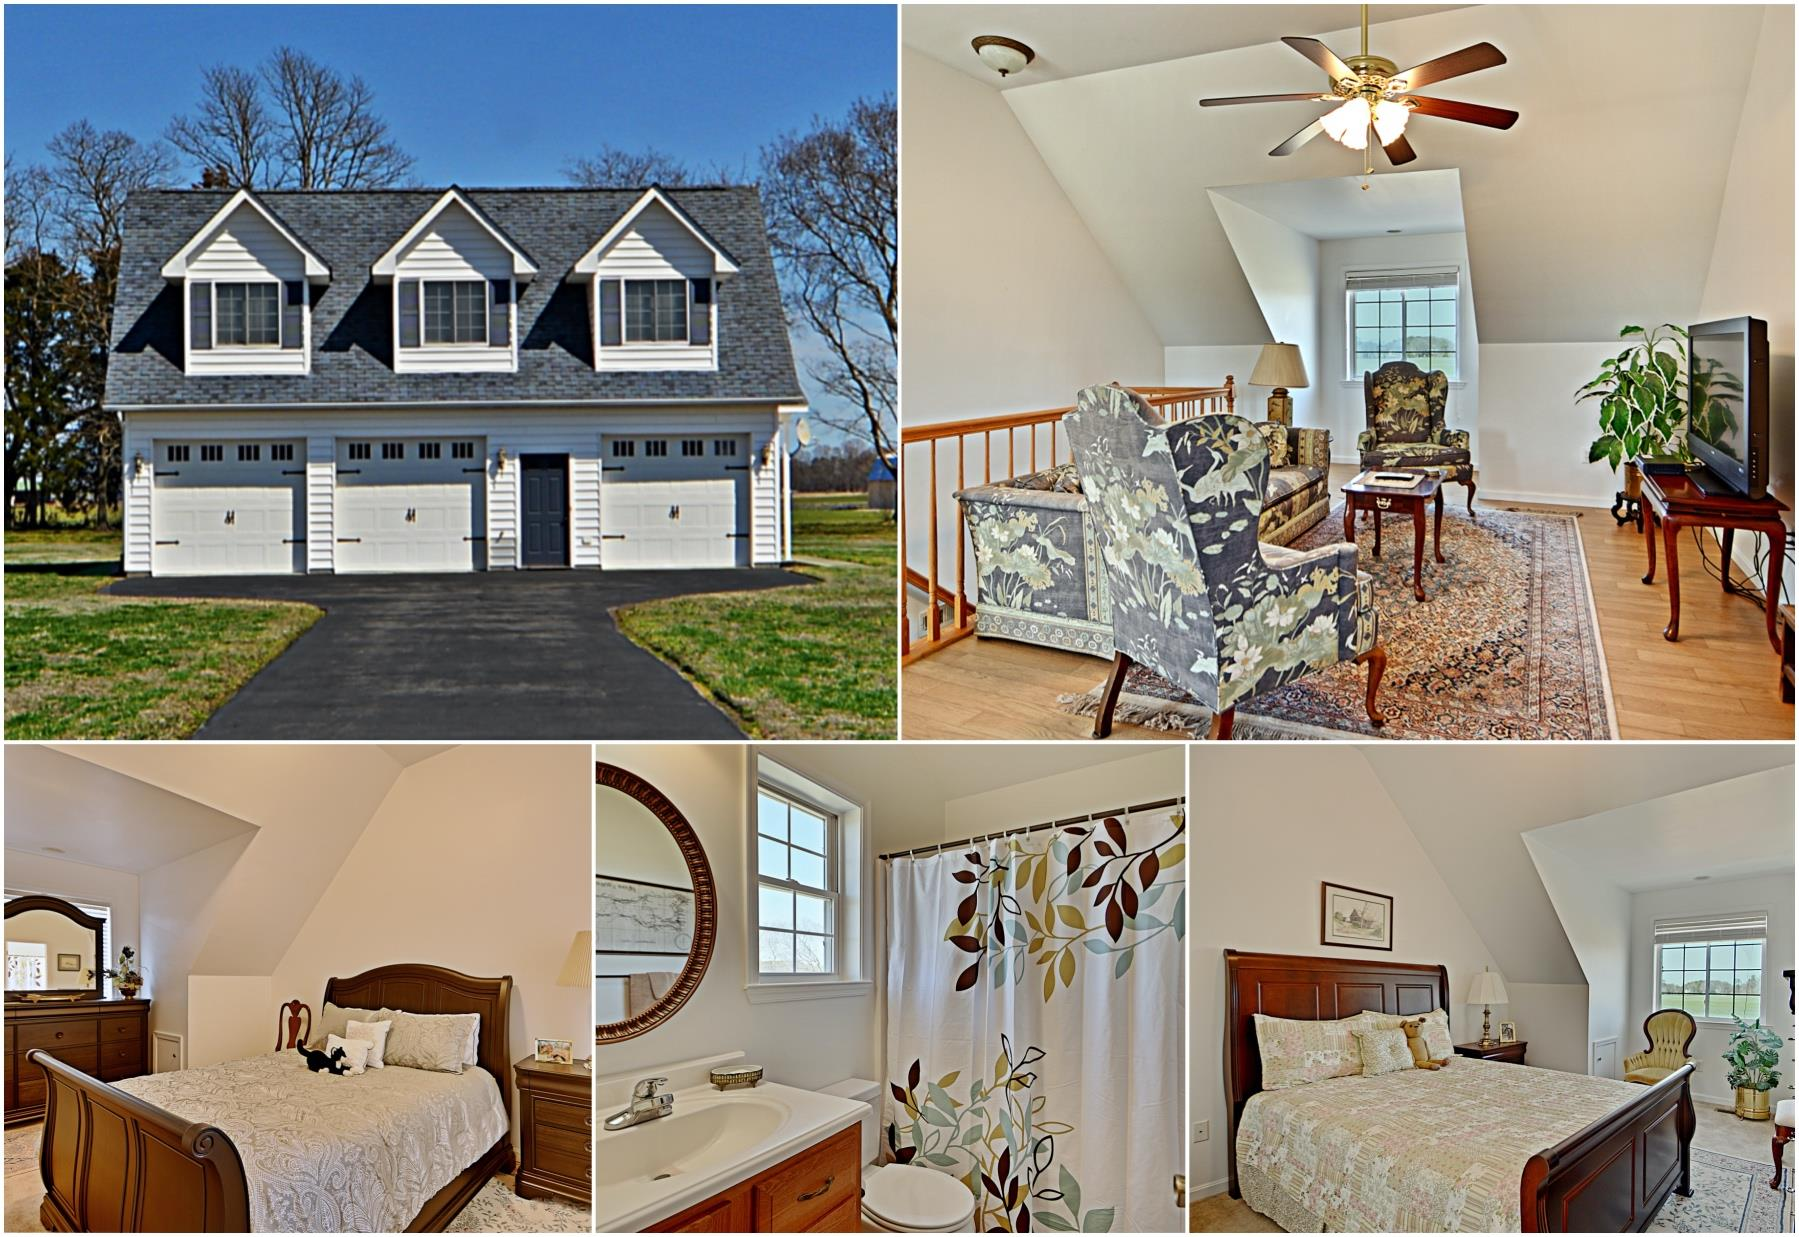 21581 Montfort Rd - Carriage House with Finished Space Above!  Beautiful Bushwood Home for Sale by Marie Lally.  This Waterfront Horse Property is GORGEOUS!  Brokered by O'Brien Realty of SOMD